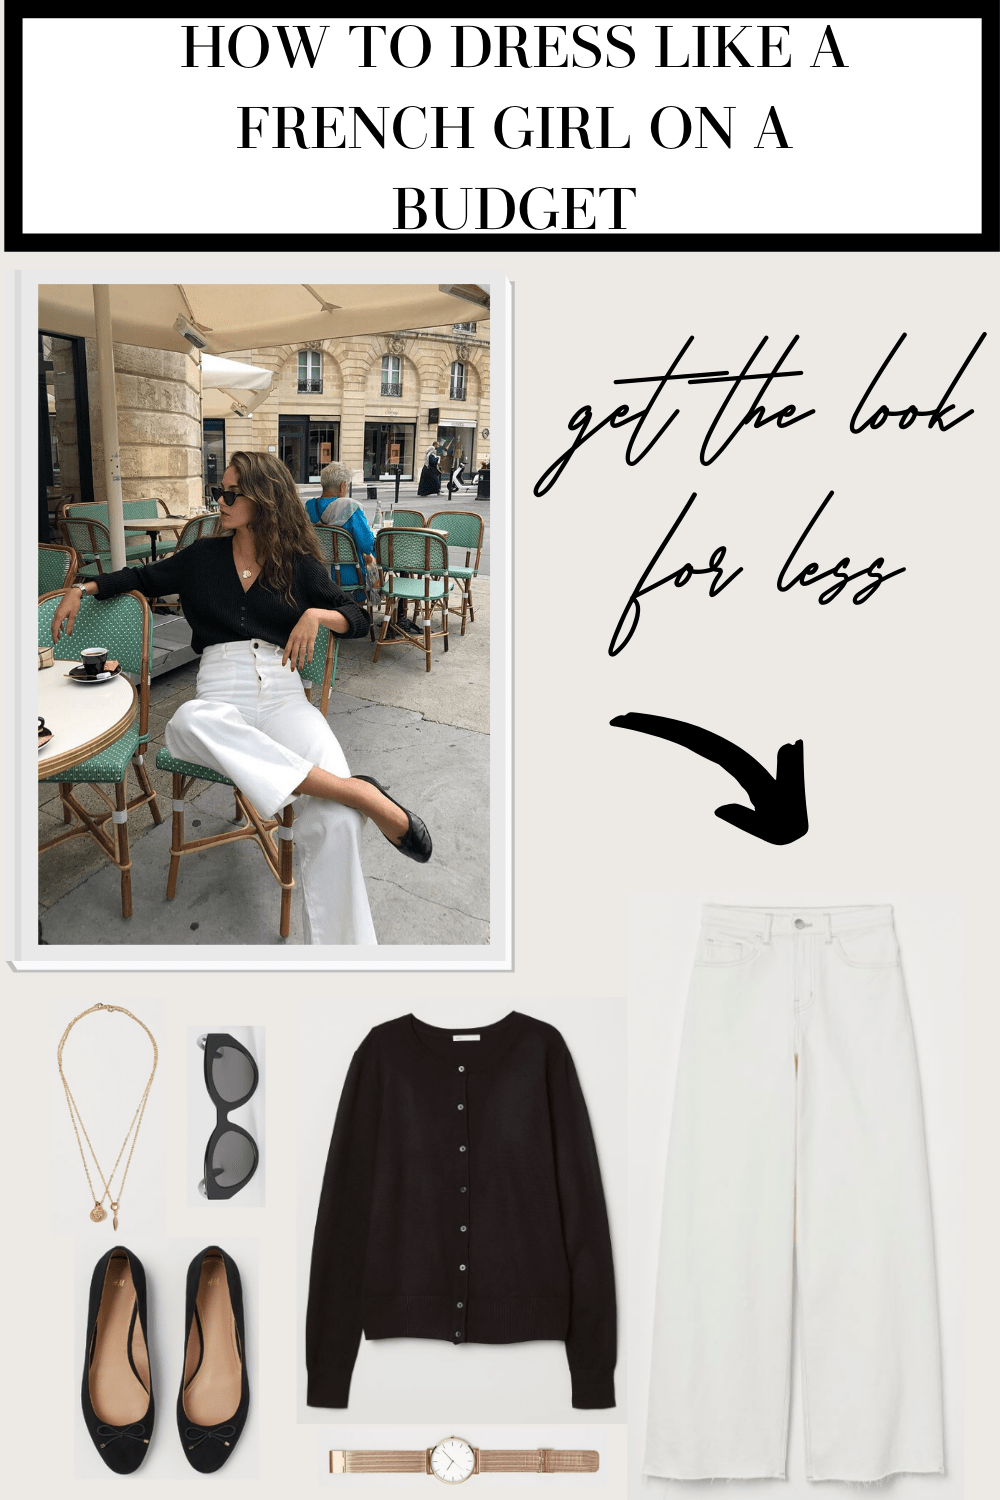 How to Dress Like a French Girl on a Budget - French Fashion